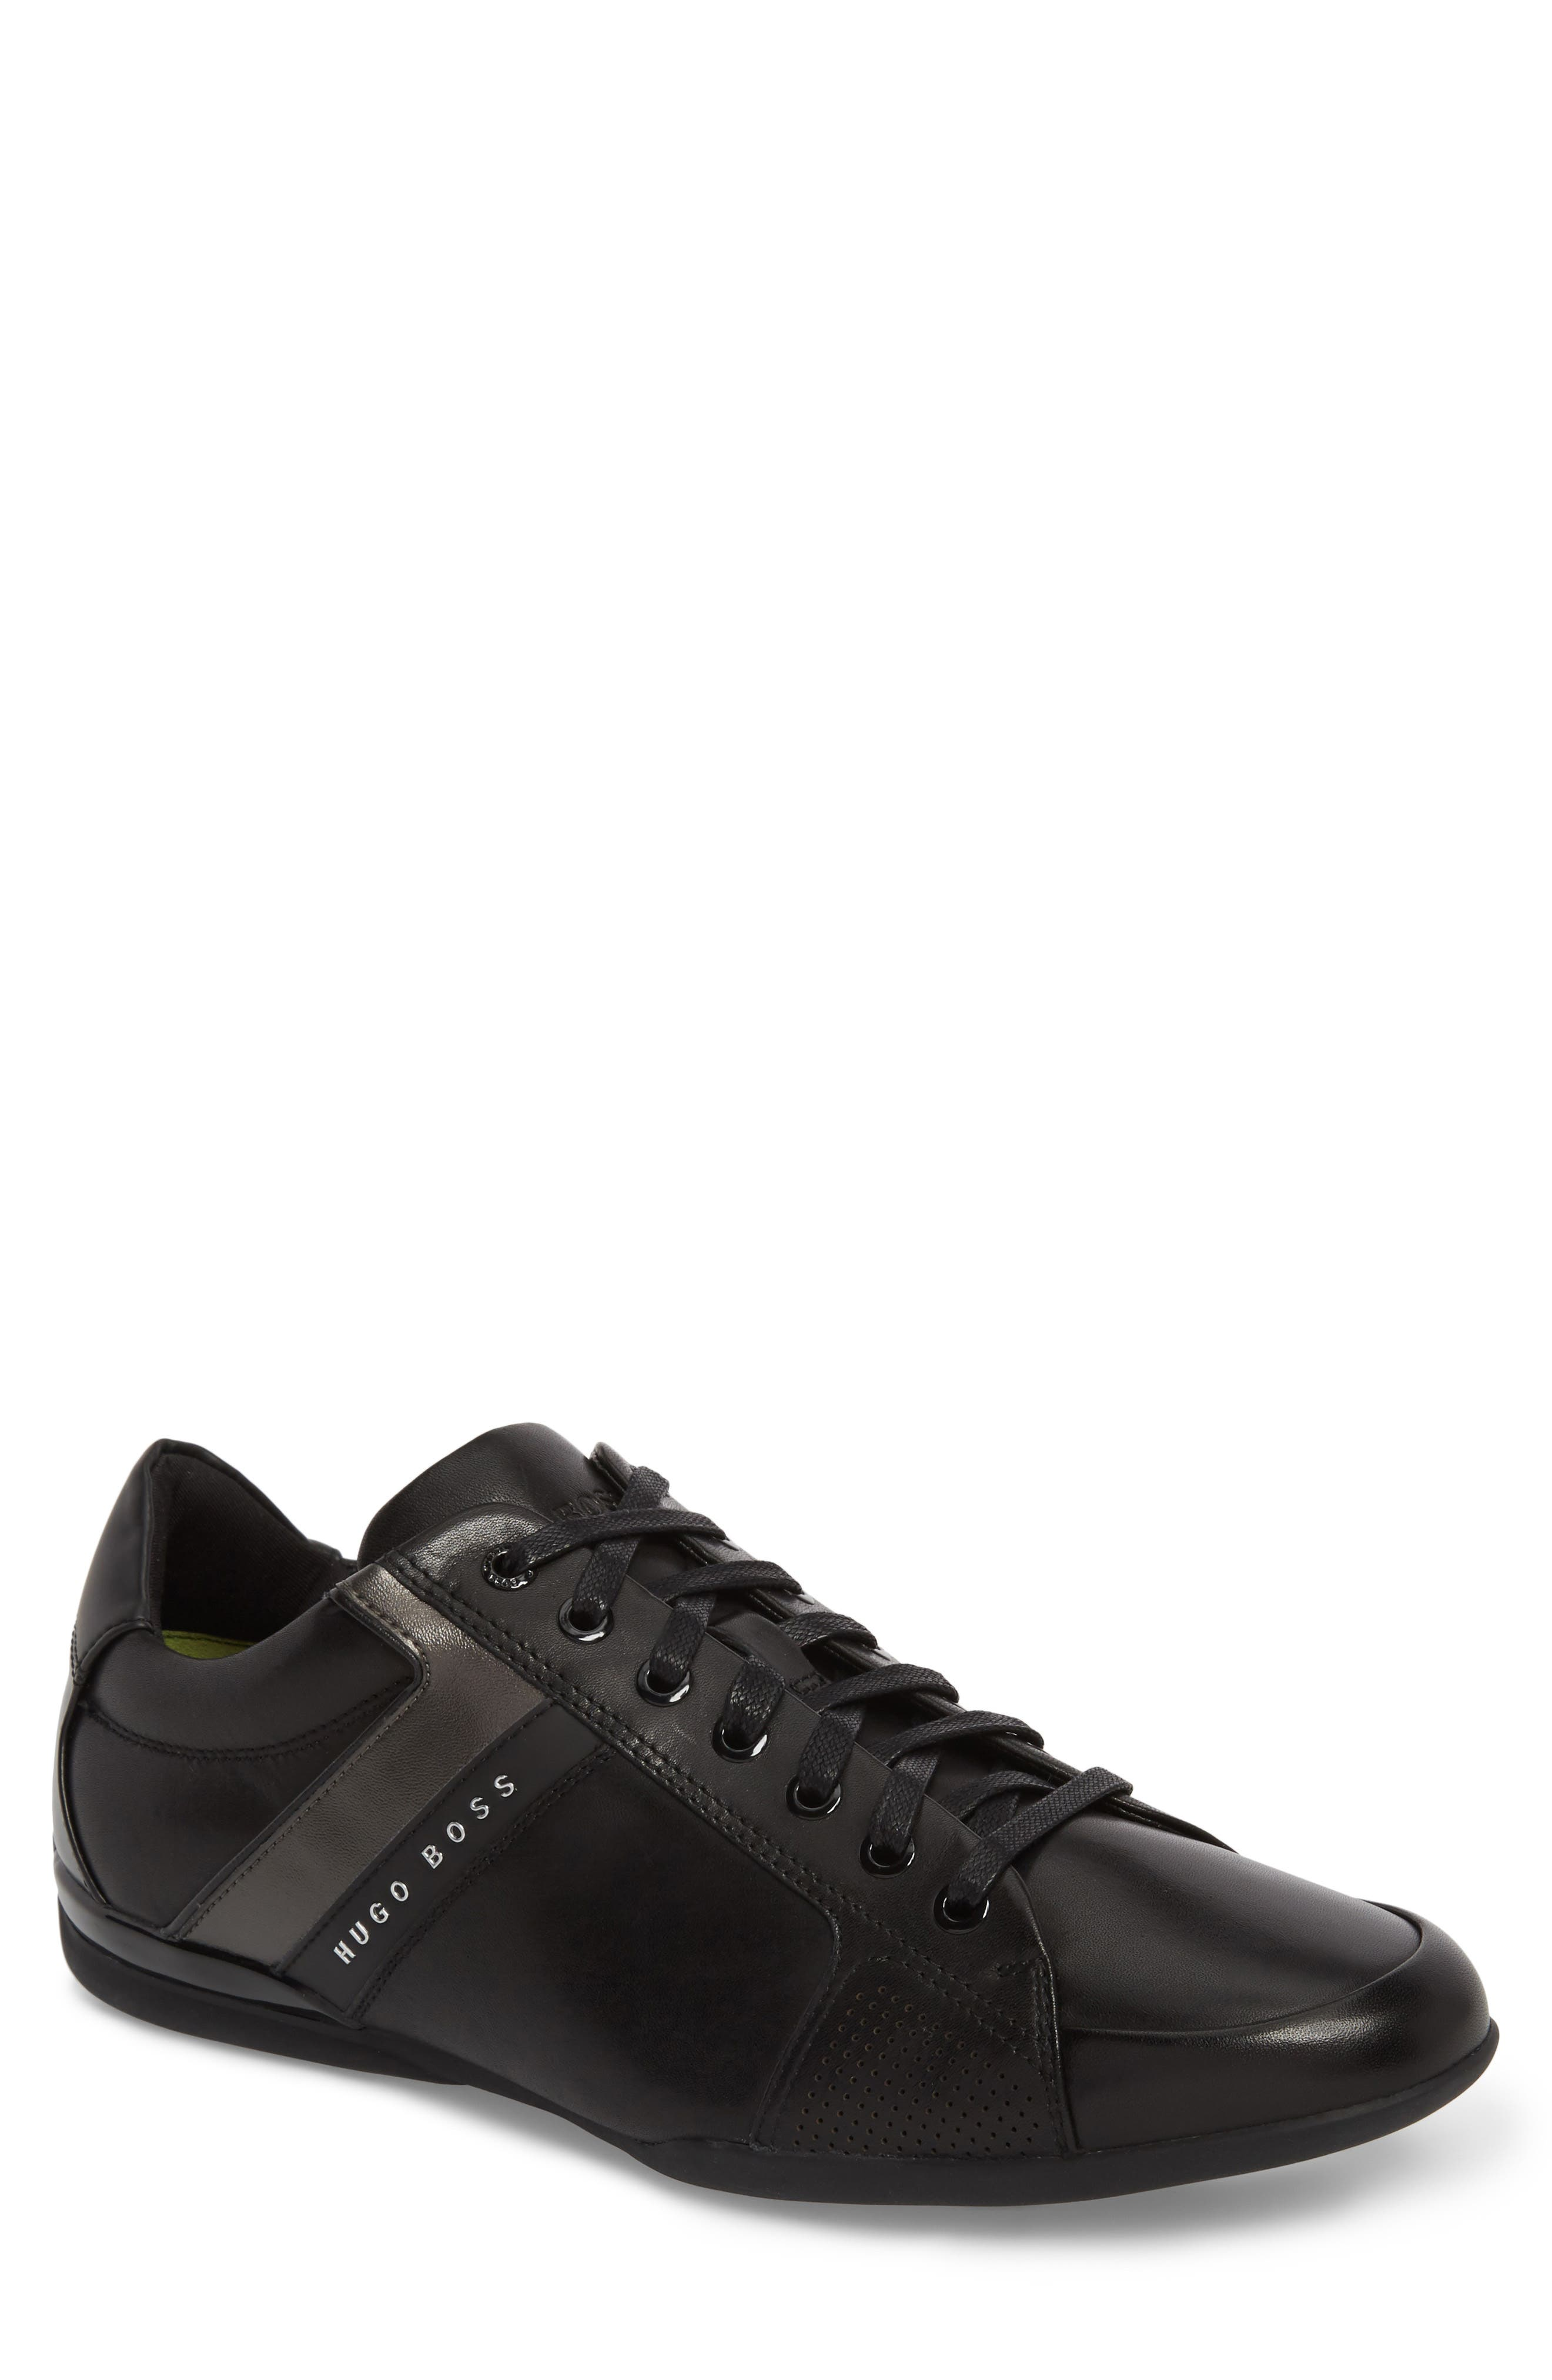 Space Lowp Lux Sneaker,                             Main thumbnail 1, color,                             Black Leather